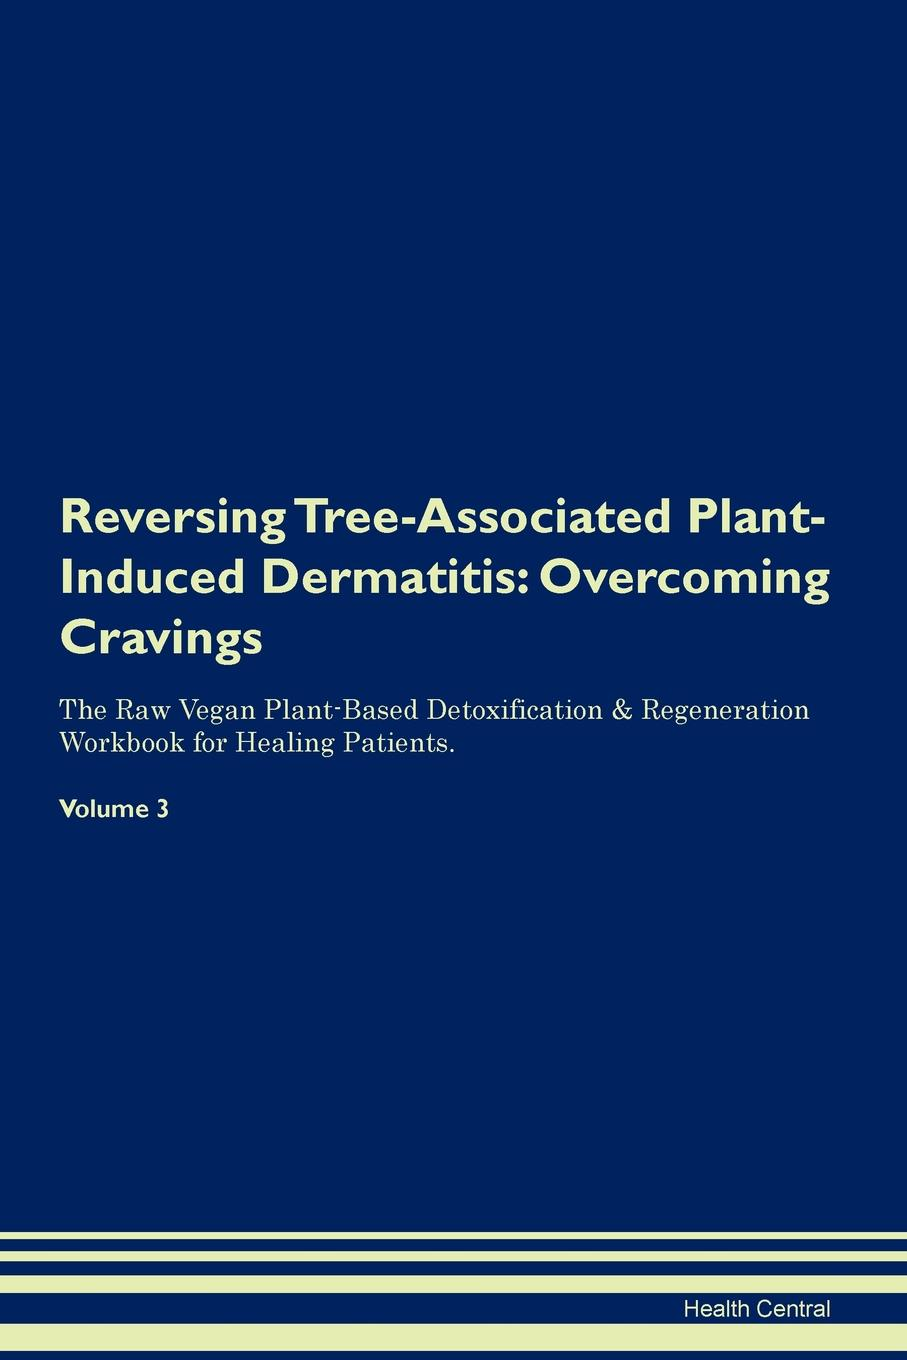 Health Central Reversing Tree-Associated Plant-Induced Dermatitis. Overcoming Cravings The Raw Vegan Plant-Based Detoxification . Regeneration Workbook for Healing Patients. Volume 3 a tree is a plant